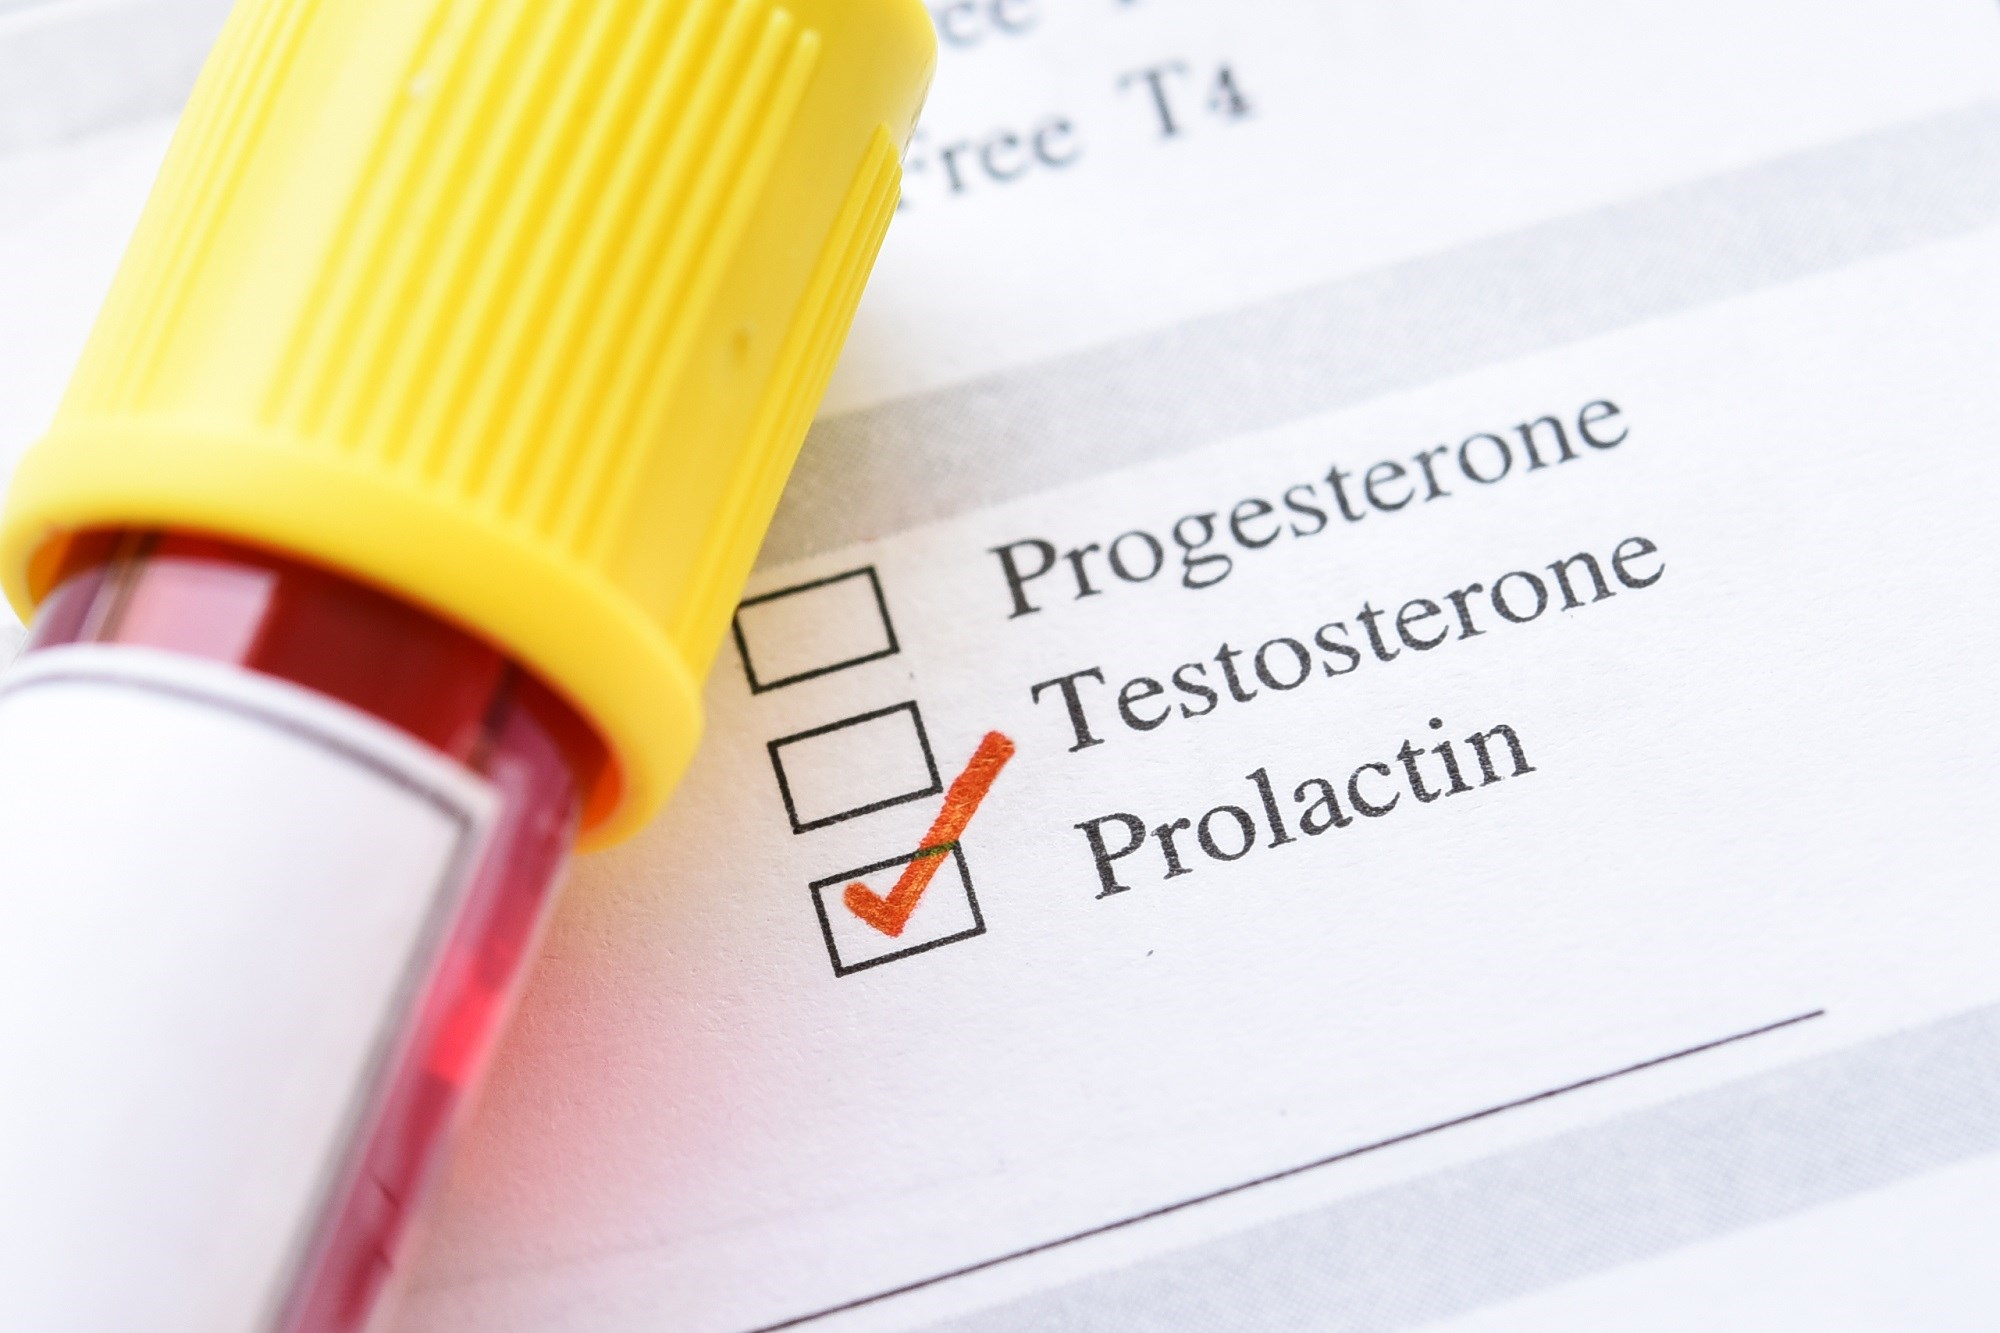 High Levels of Prolactin in Women Inversely Linked to T2D Risk